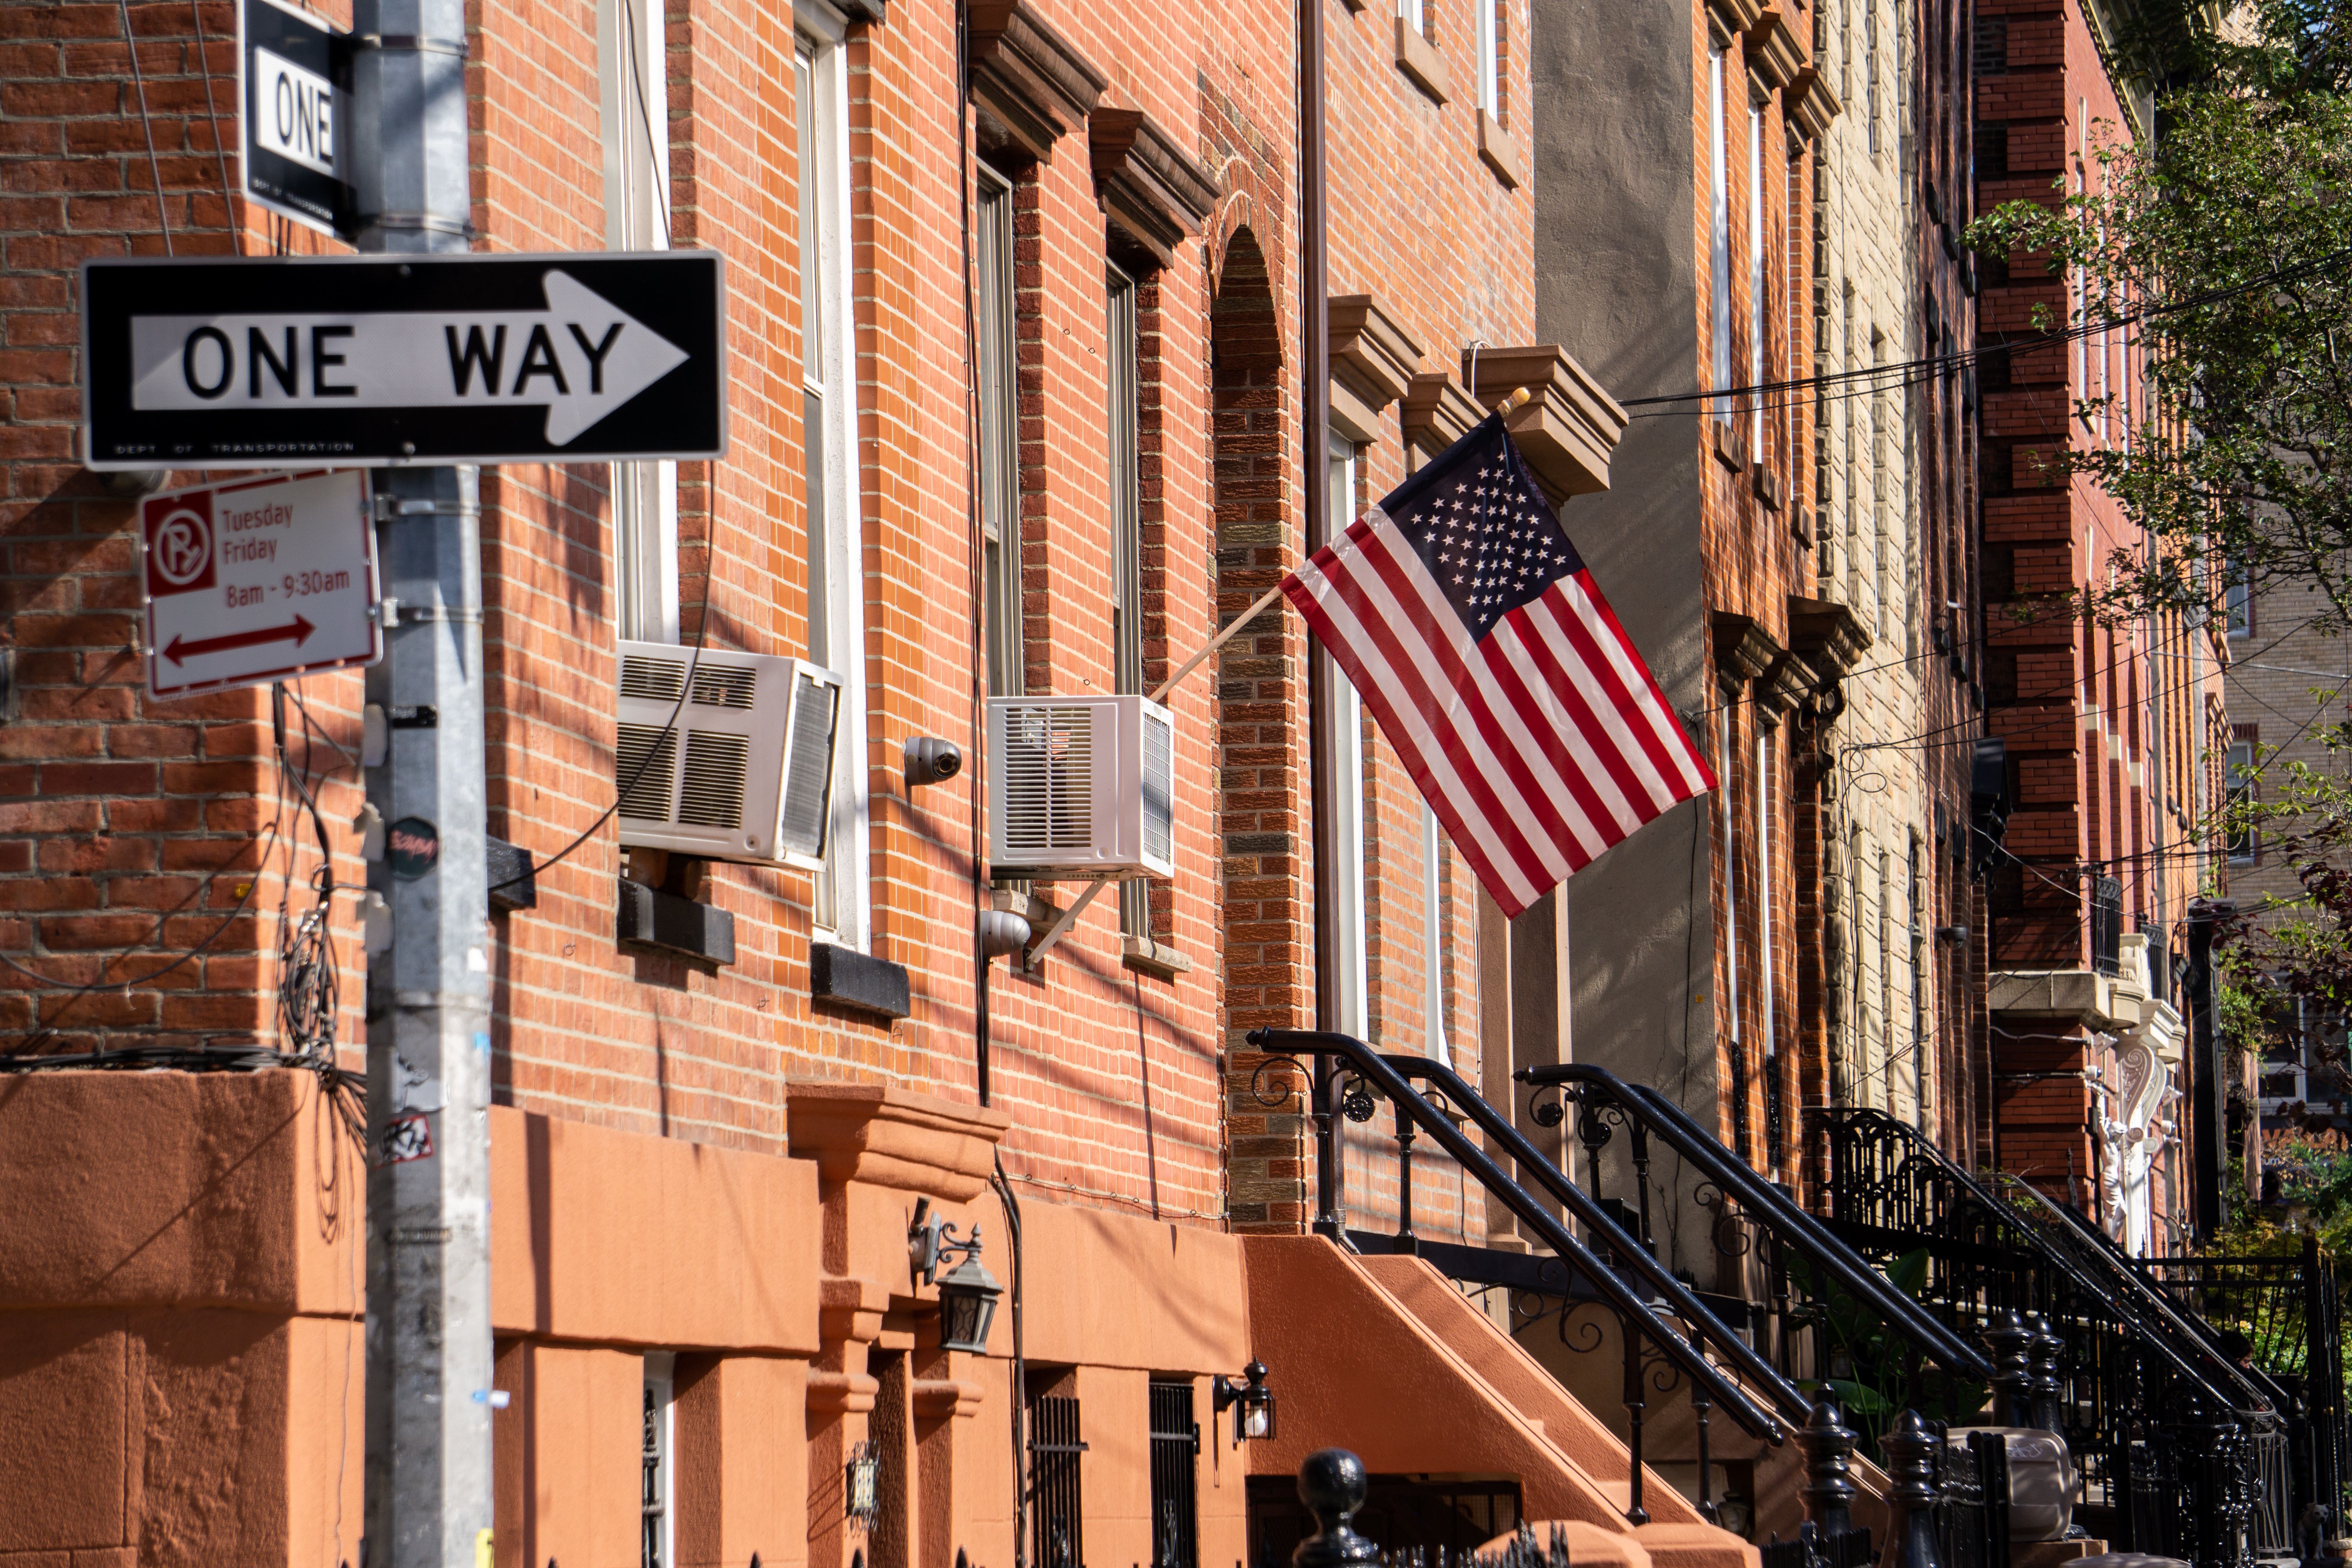 An American flag on a front porch is shown in front of row of brownstones on a New York street.